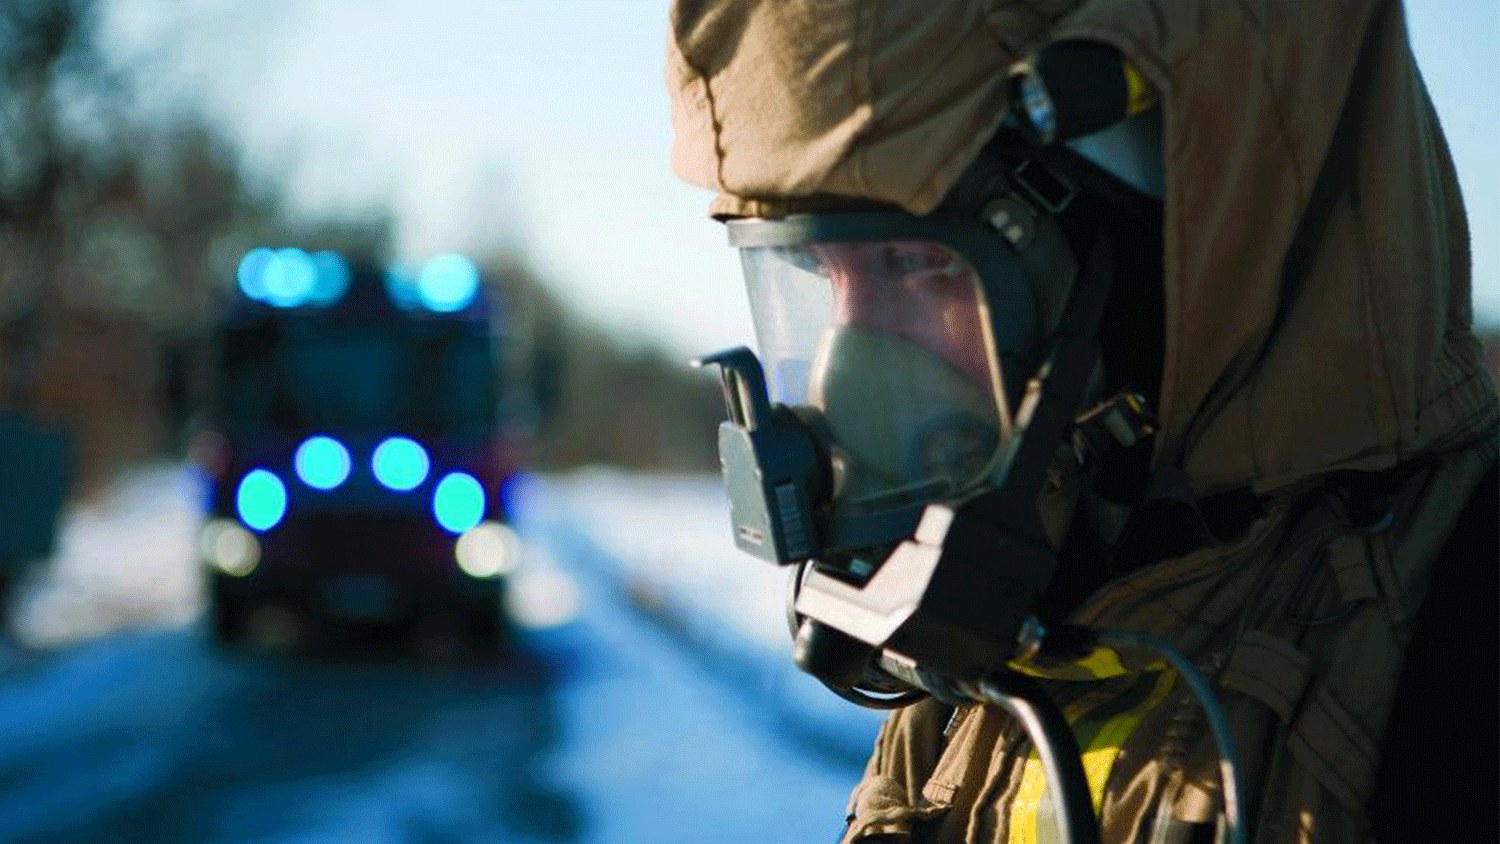 firefighter with smoke diving equipment in front of a firetruck